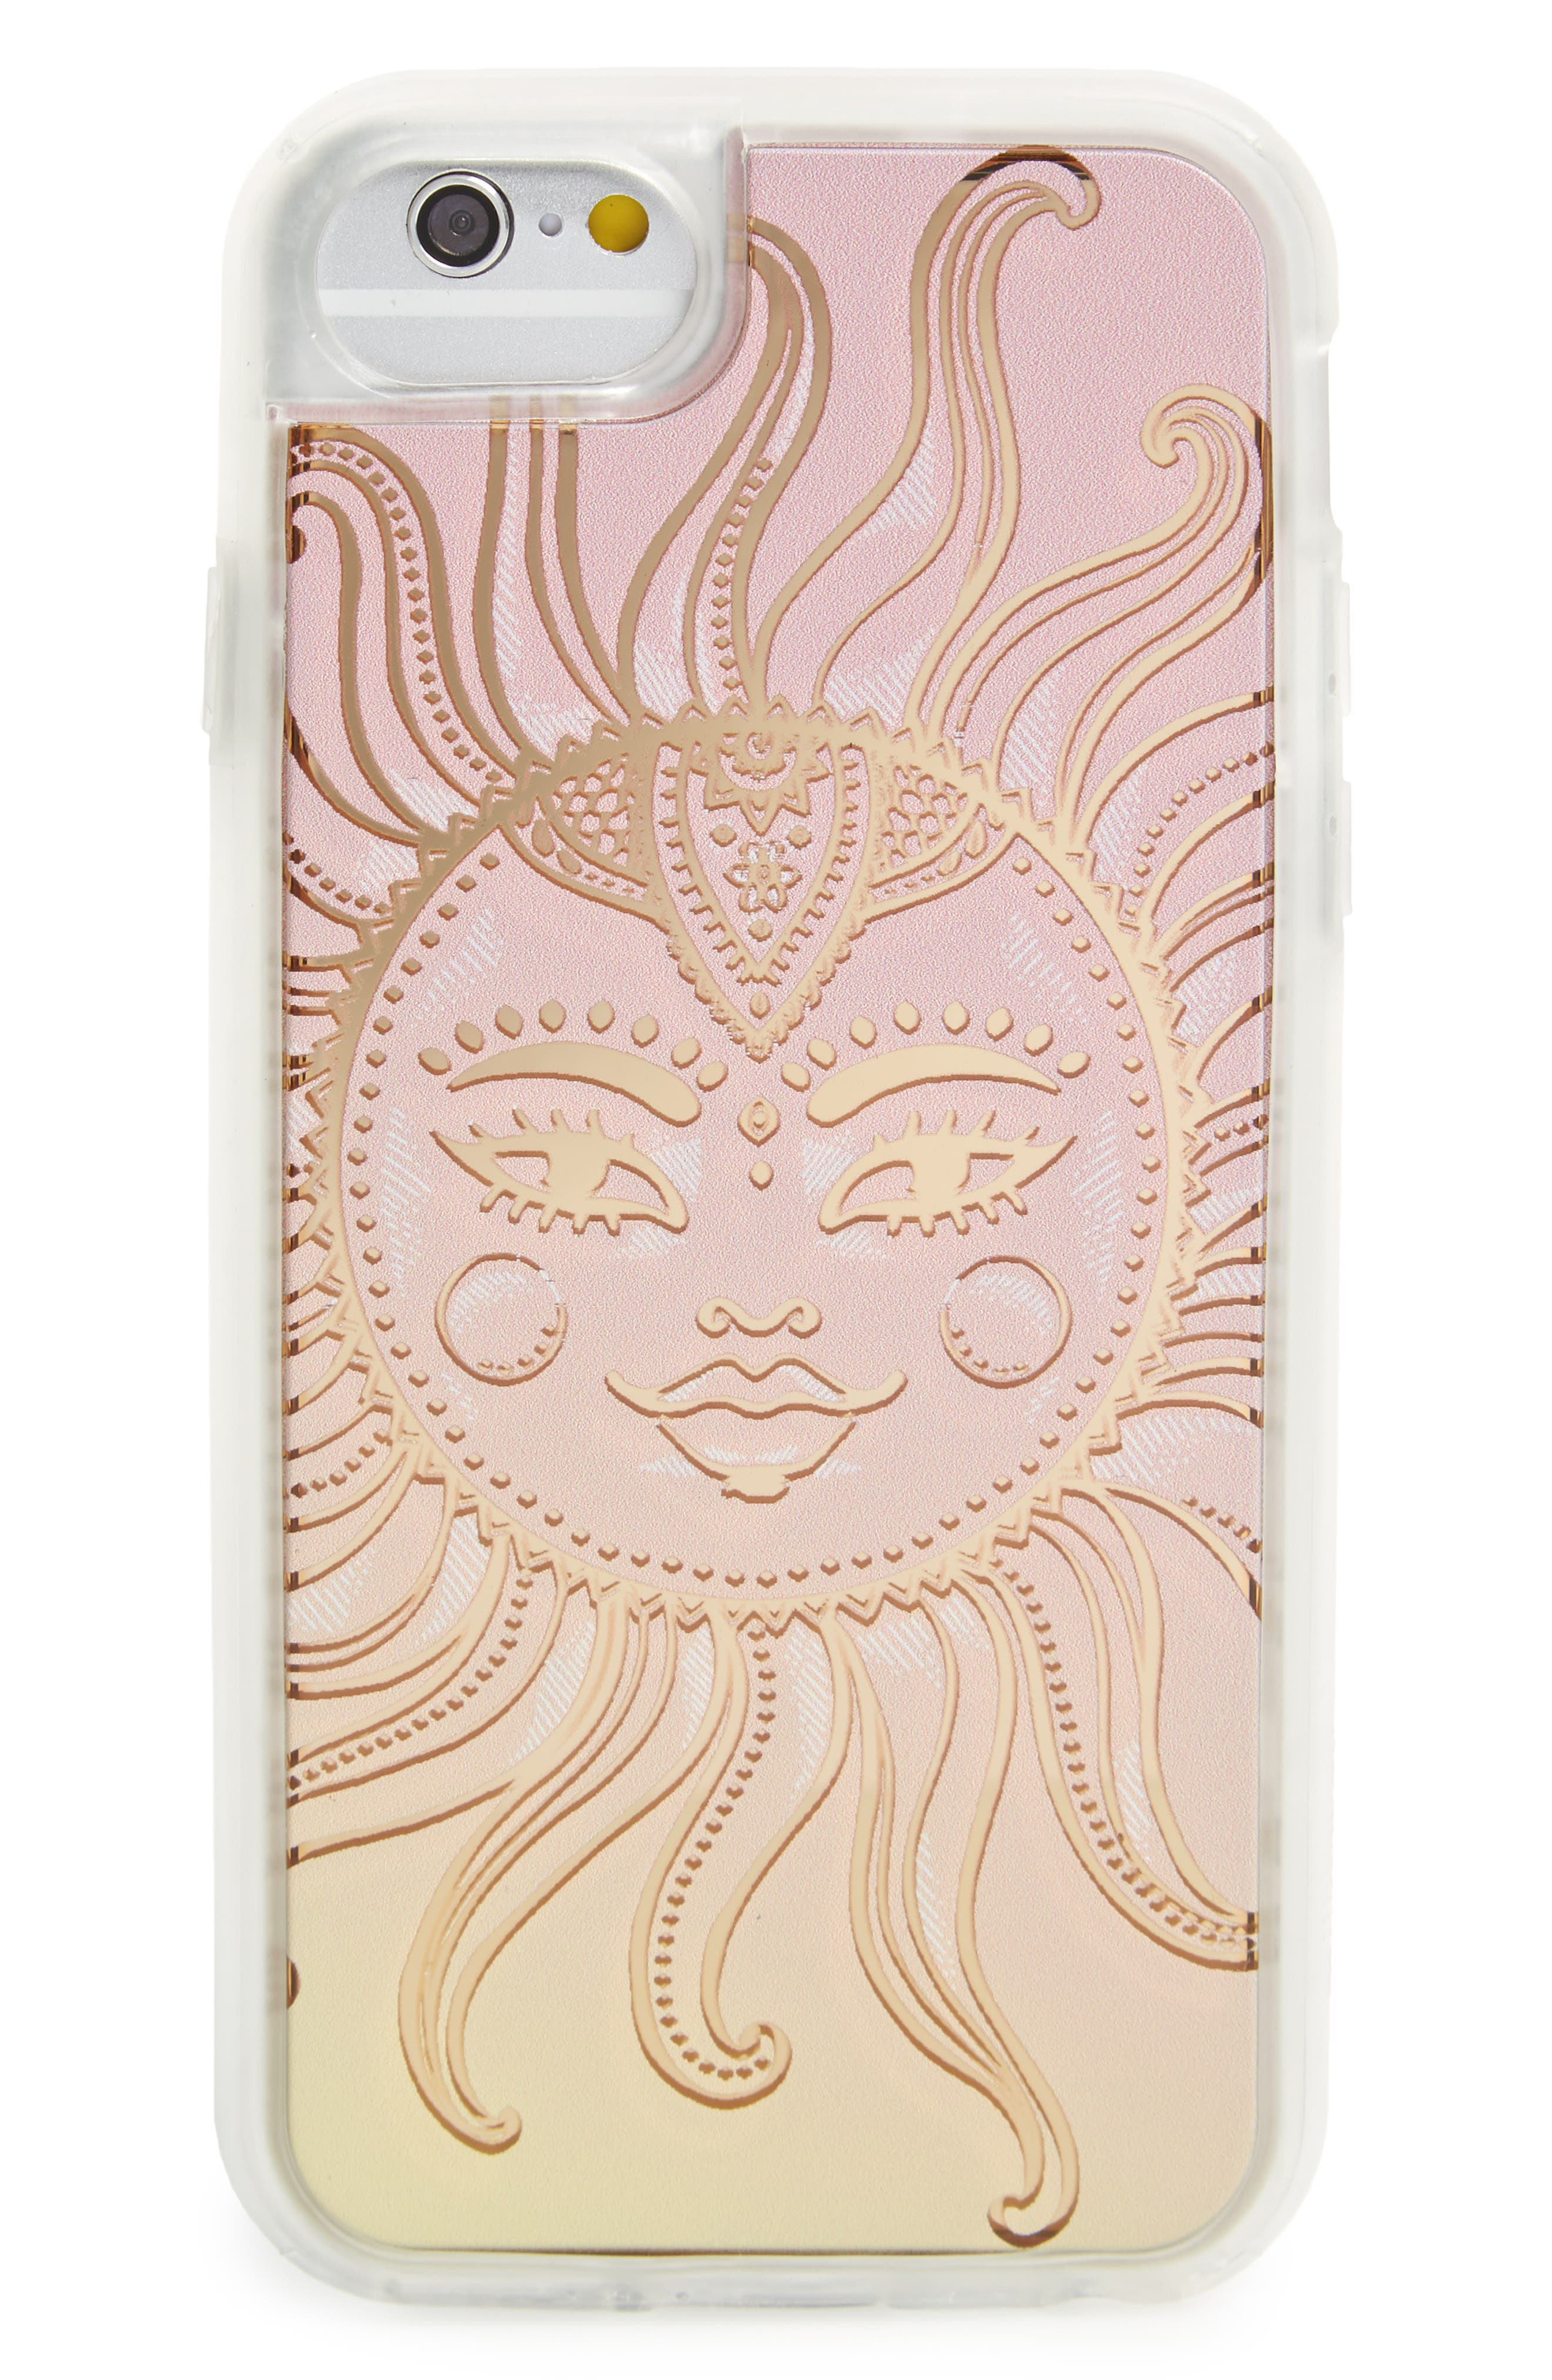 MILKYWAY Sublime iPhone 6/6s/7 Case